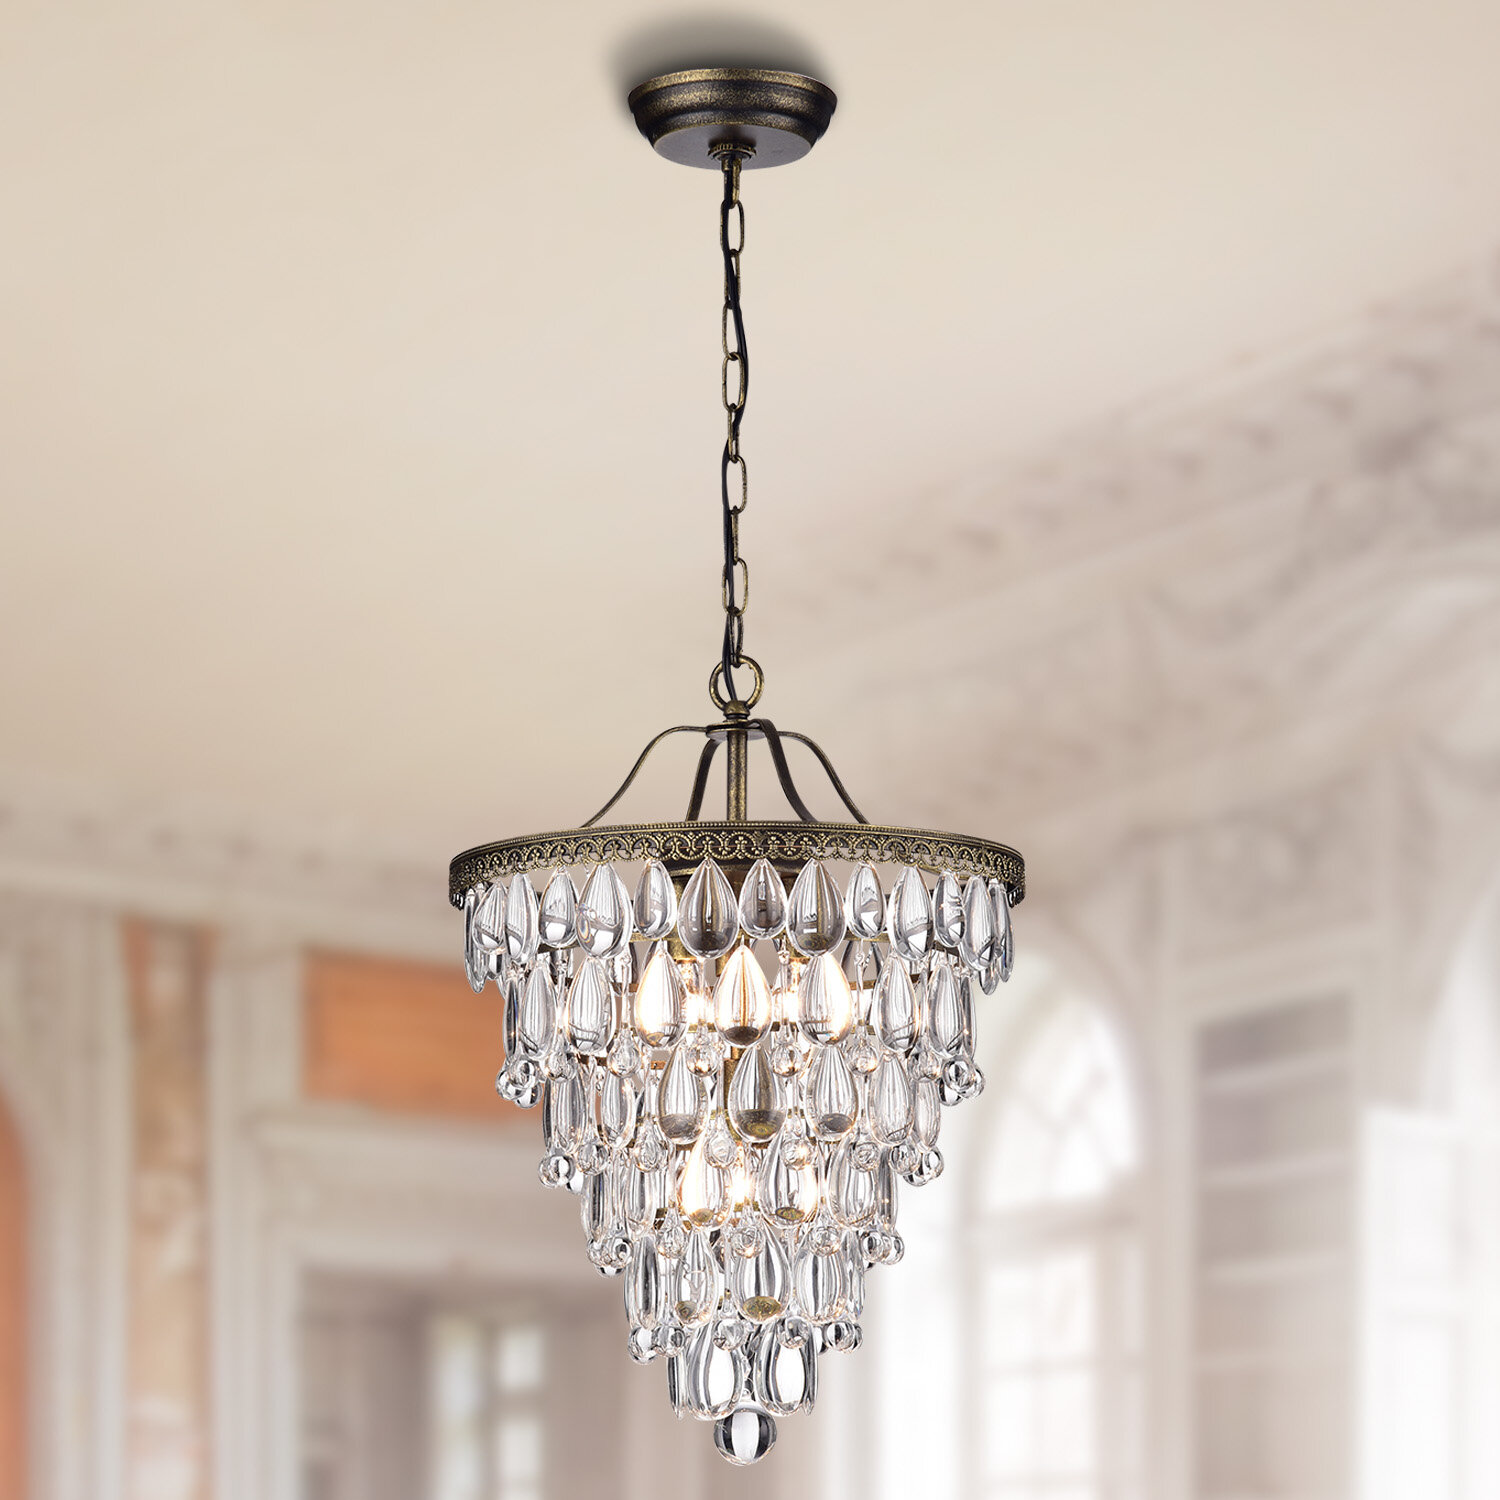 recycled size glass art bead full chandelier blown